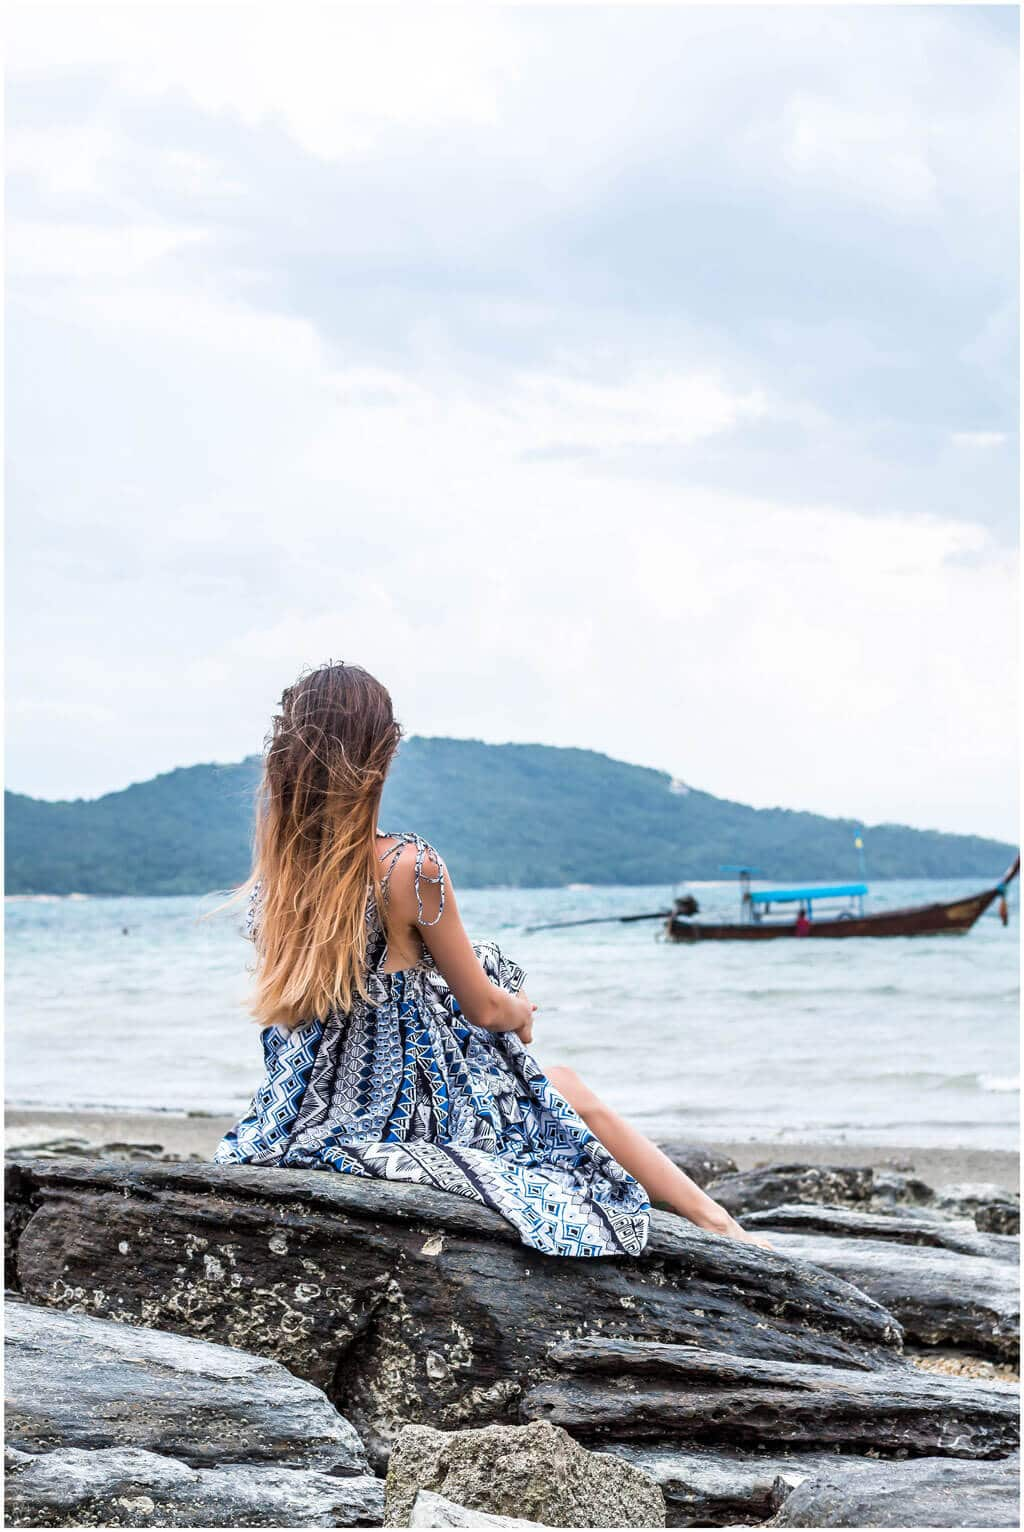 krabi_beach_thailand_dress_resort_photoshoot_hedonistit-11-27_0011